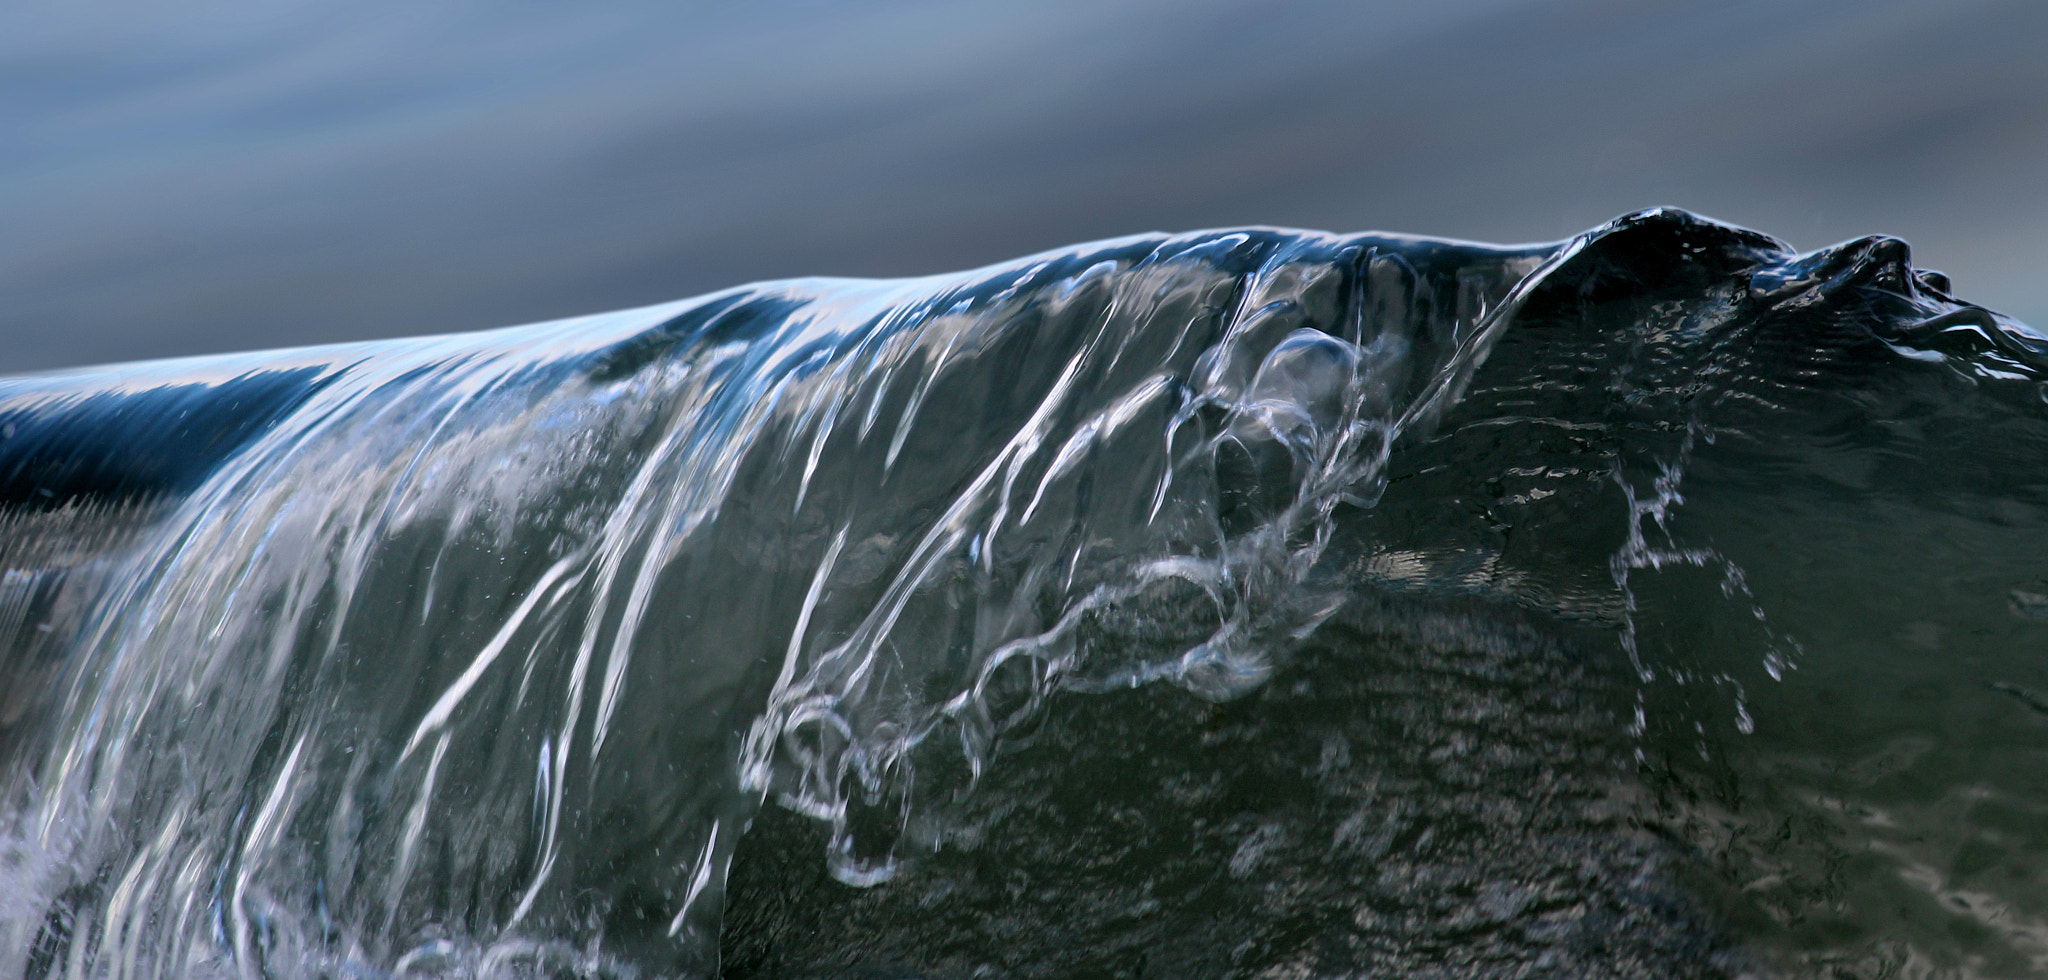 Photograph waves-IMG_2740-c by Jan-Peter Semmel on 500px